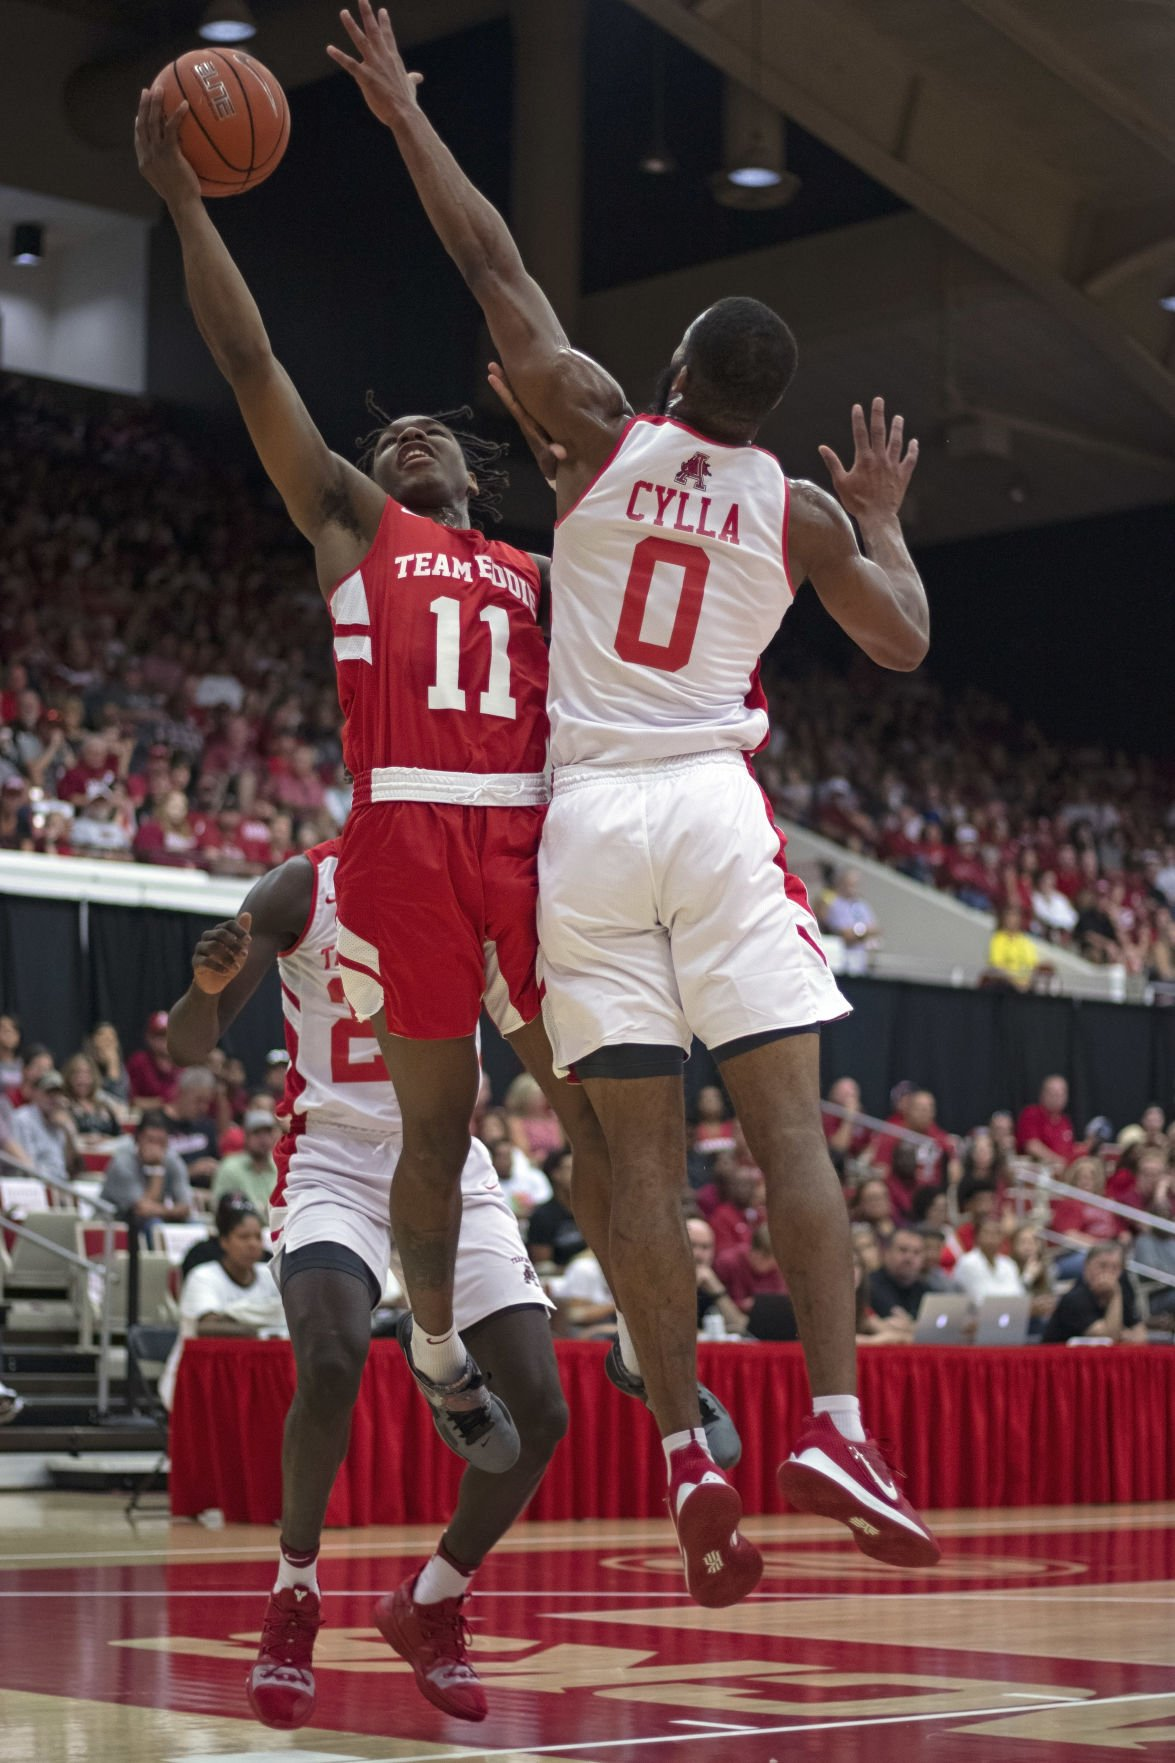 Red Team Soundly Defeats White Team in Exhibition Game